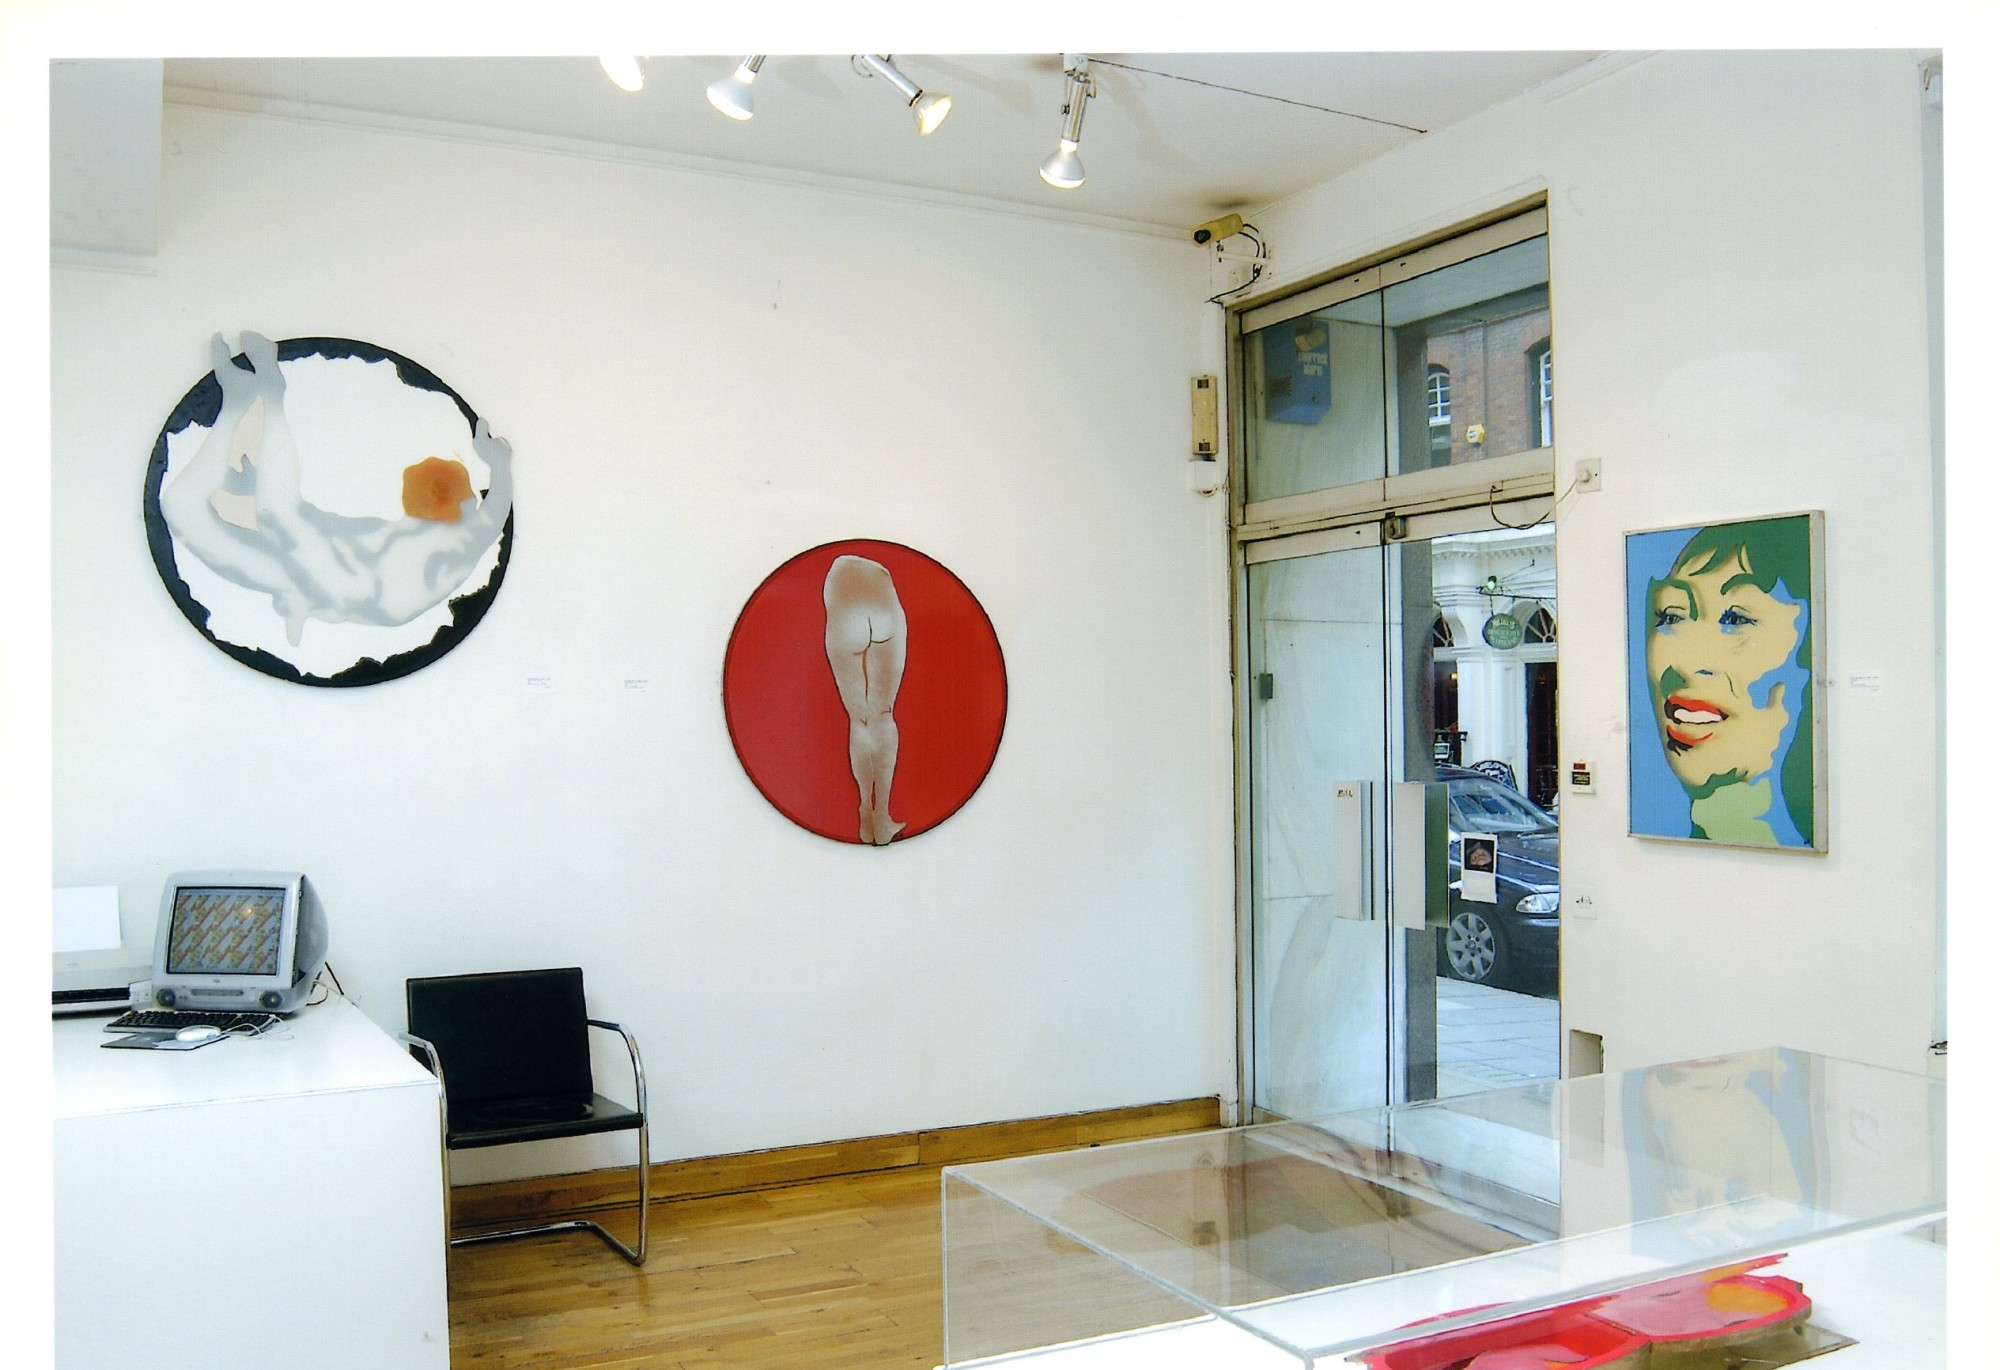 """<span class=""""link fancybox-details-link""""><a href=""""/exhibitions/119/works/image_standalone499/"""">View Detail Page</a></span><p>EVELYNE AXELL   FROM POP ART TO PARADISE   24 MAR - 4 JUL 2005   Installation View</p>"""